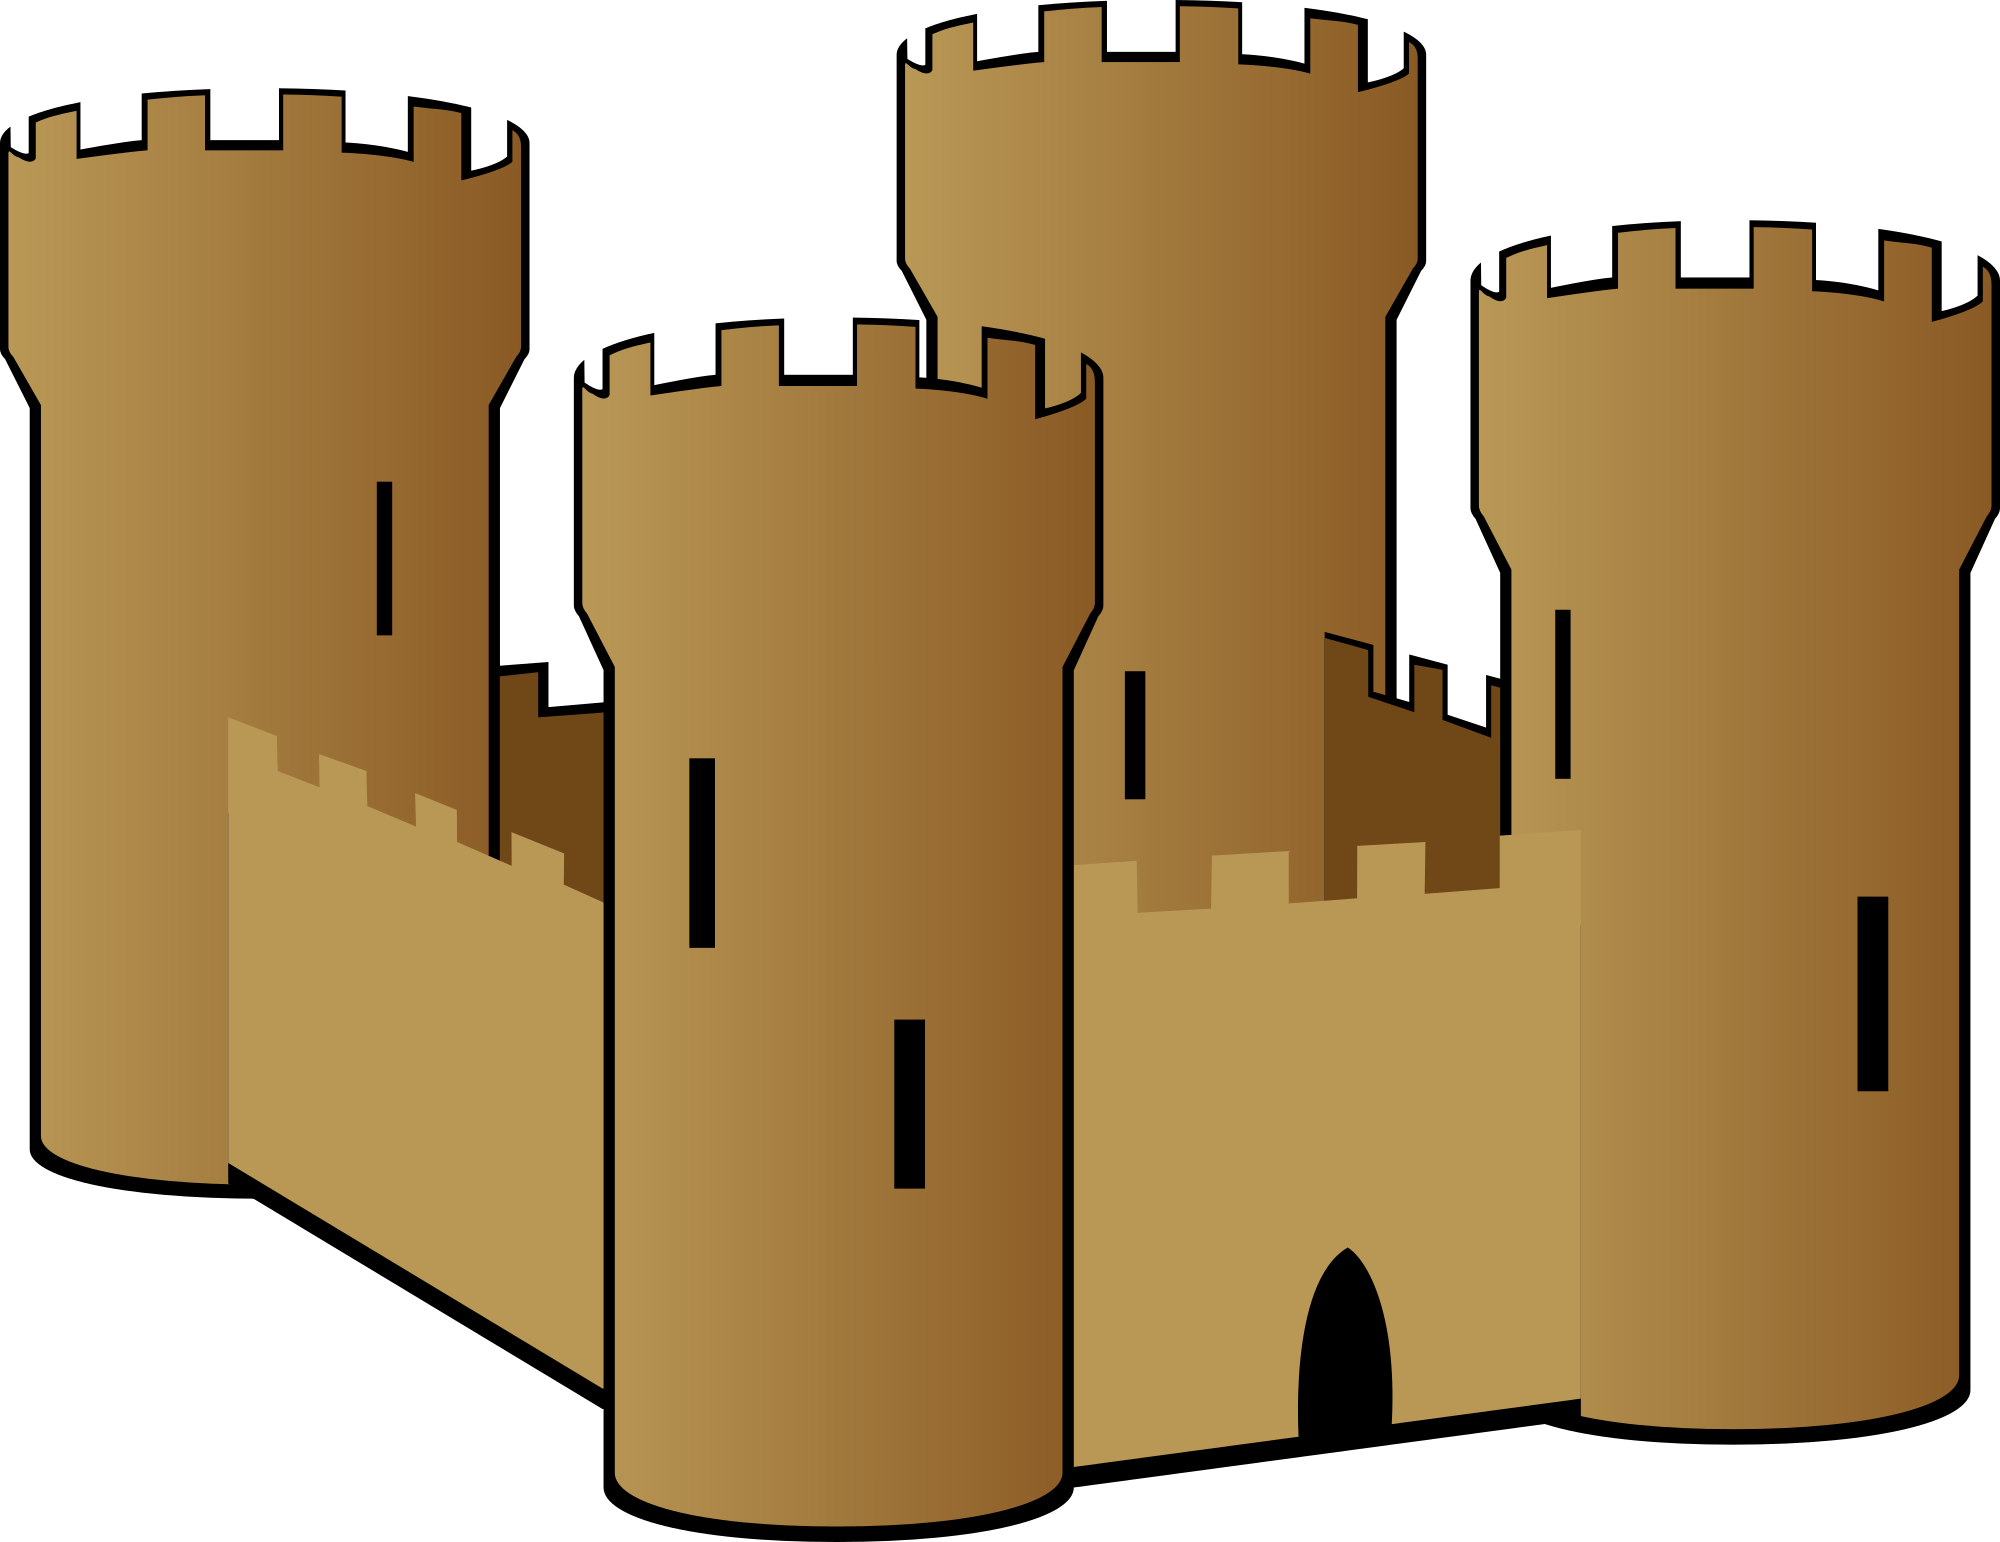 Free sand castle clipart and vector image 2